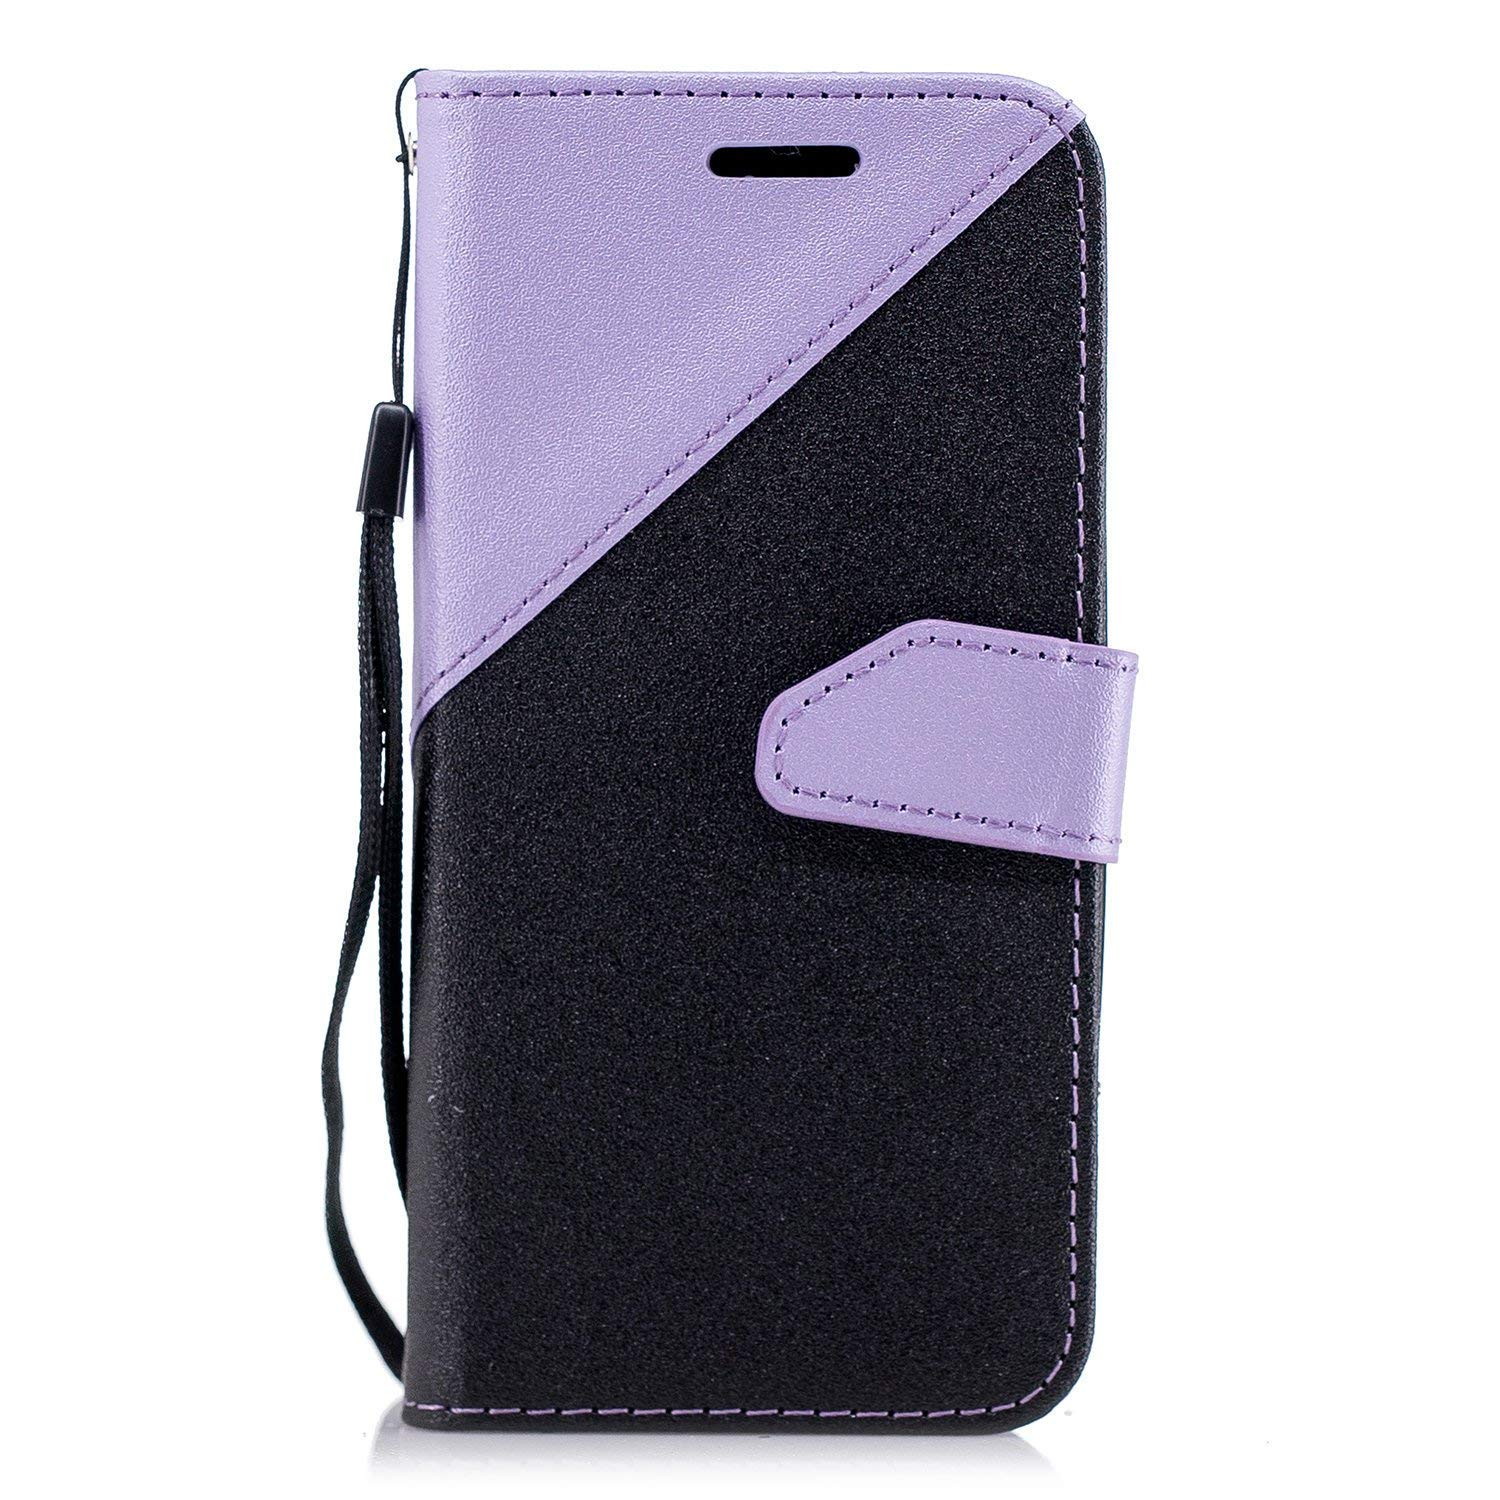 Surakey Huawei P8 lite 2017 Case, Sparkle Wallet Case Bling Glitter Splice Colors Flip PU Leather Protective Cover with Credit Card Slots Cash Holder for Huawei P8 lite 2017,Black Light Purple